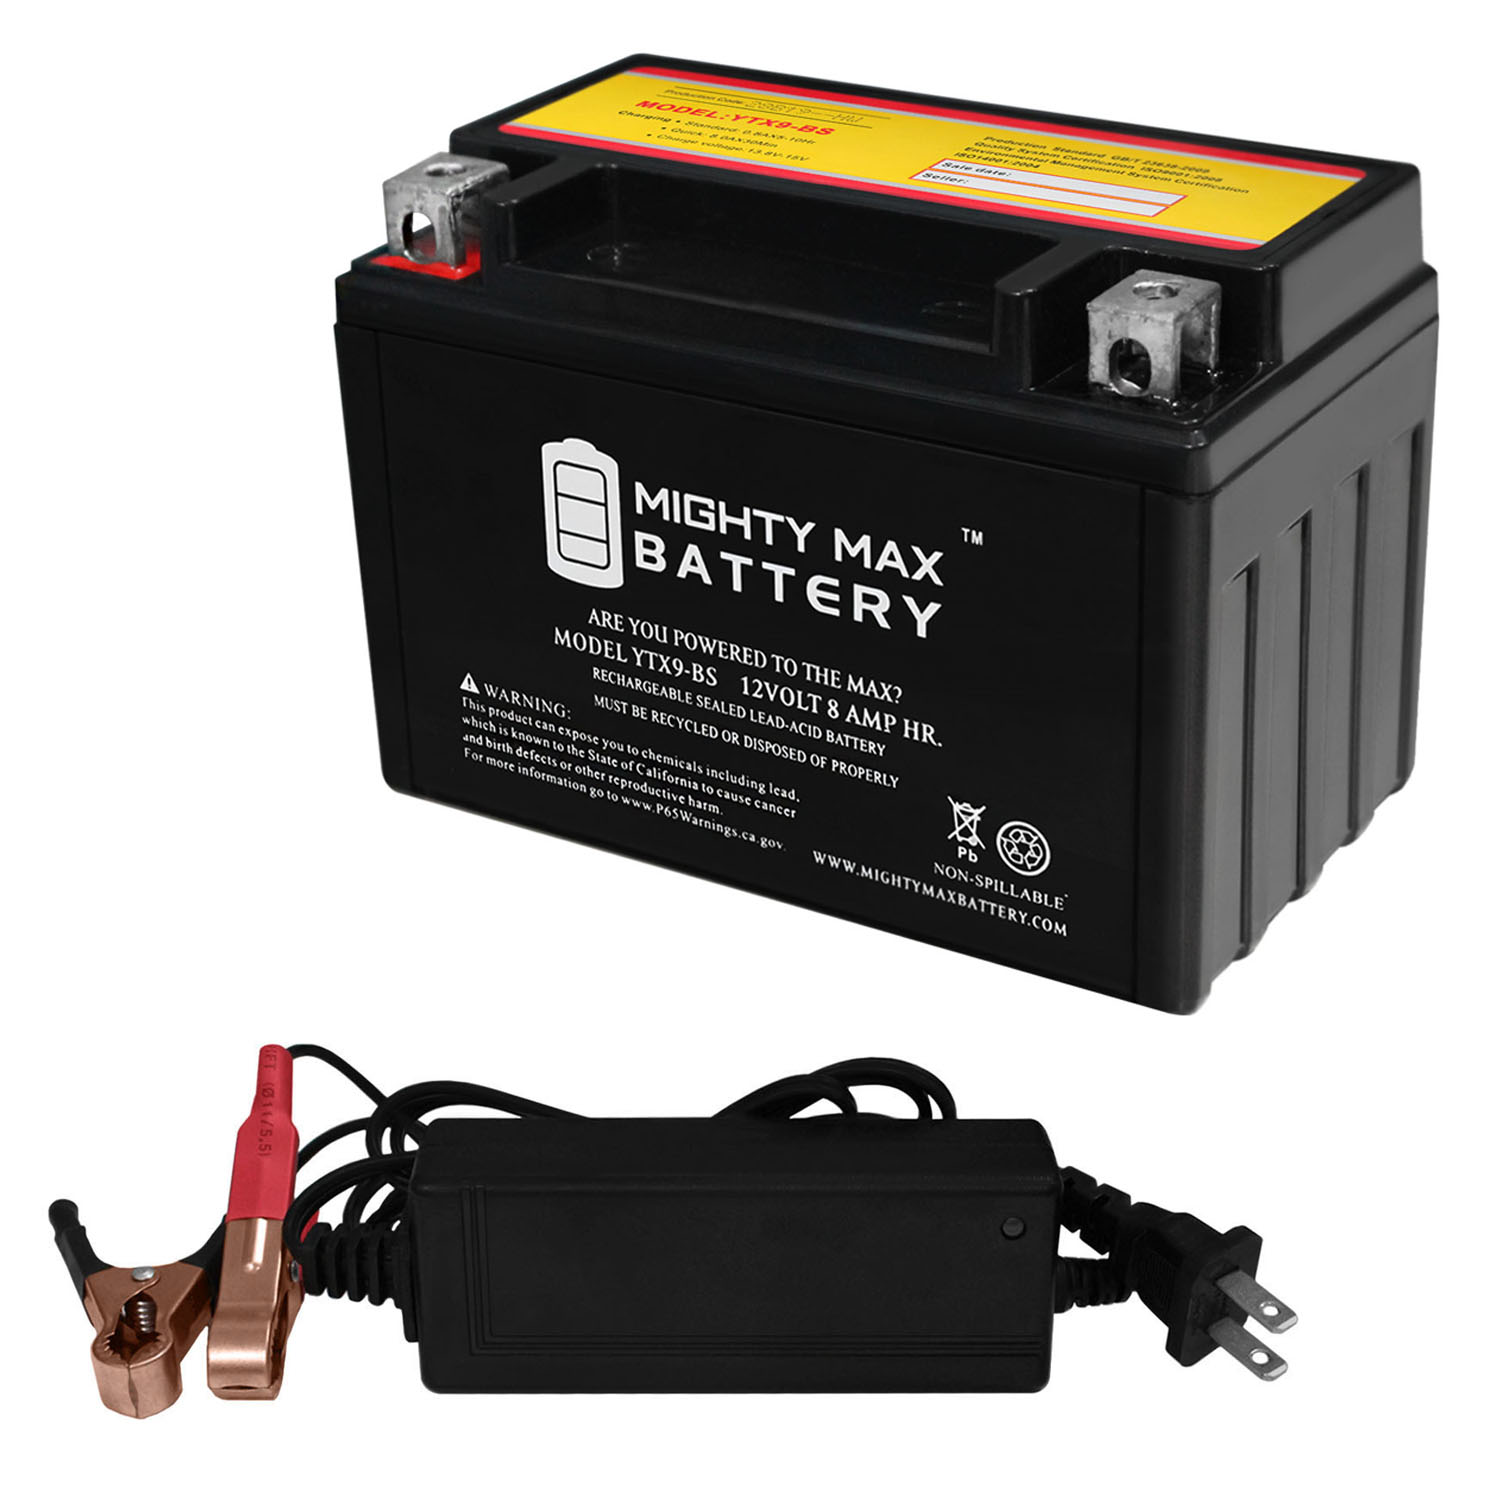 mighty max ytx9 bs 12v 8ah battery for atv suzuki ltz400. Black Bedroom Furniture Sets. Home Design Ideas